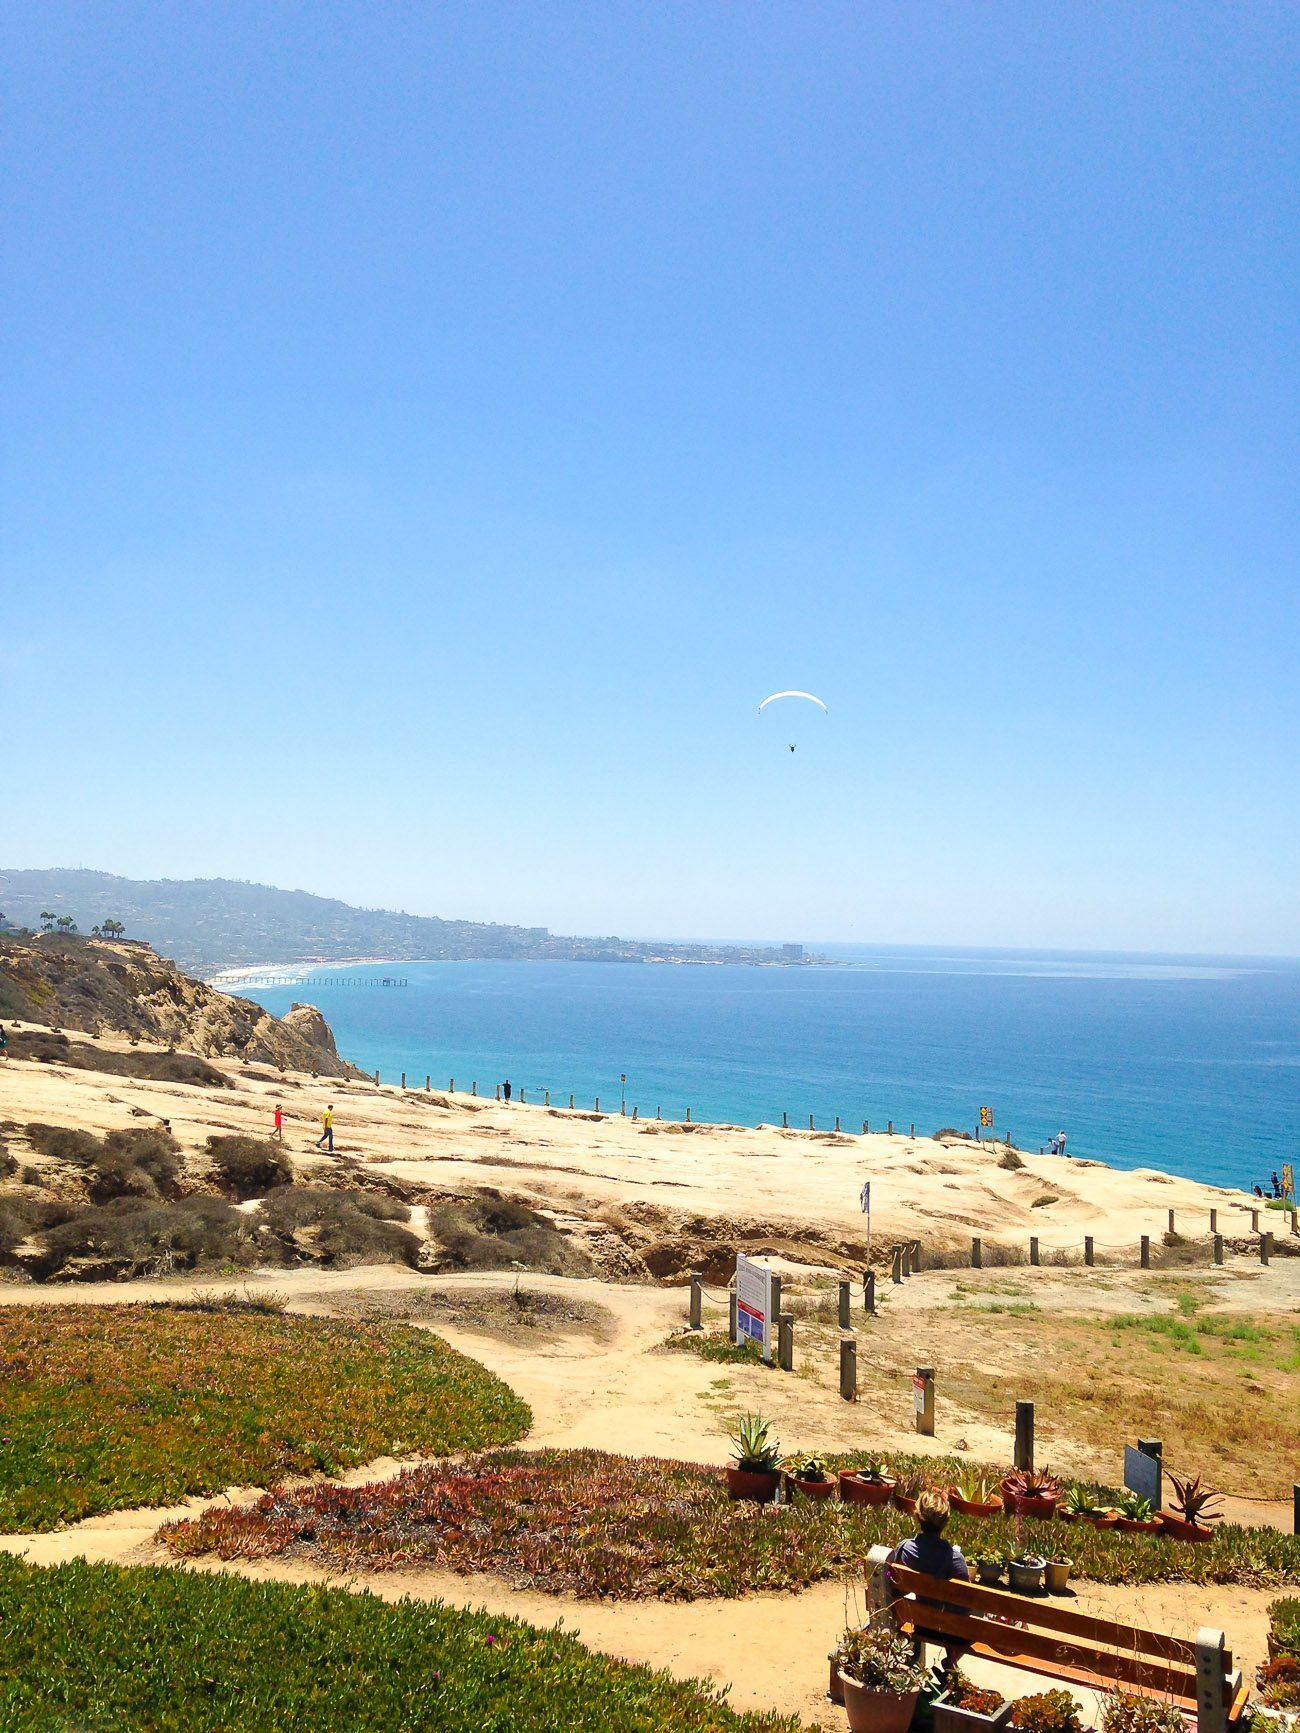 Torrey Pines Gliderport view to La Jolla